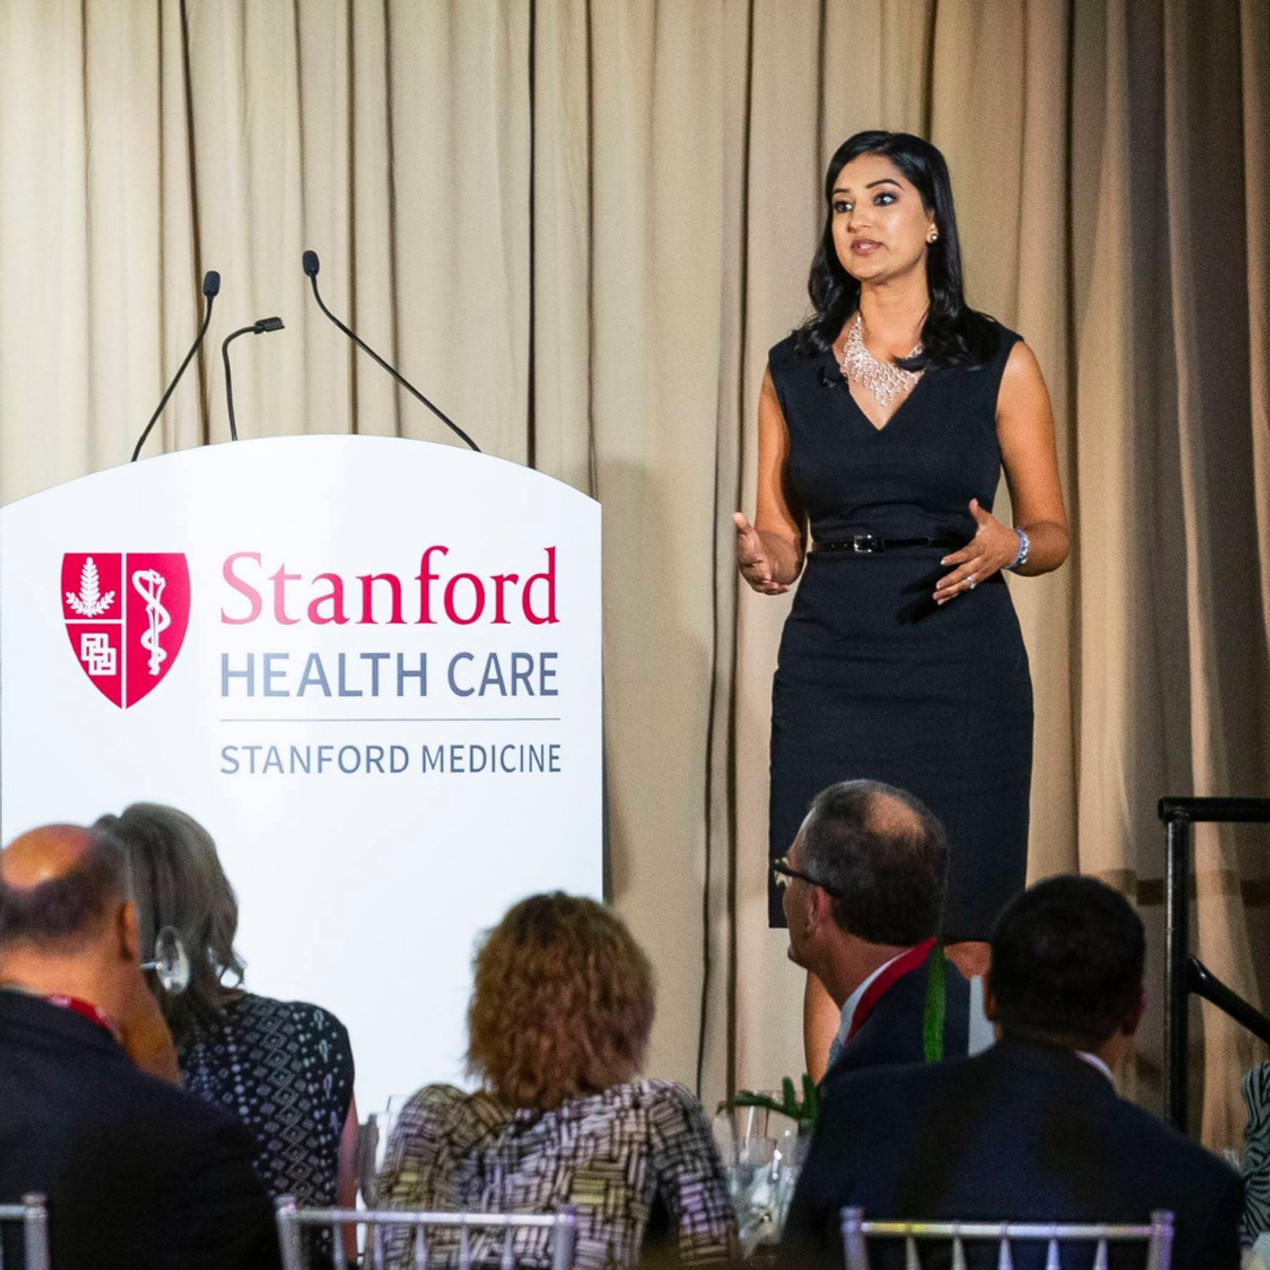 Parul speaking at the grand opening of the new Stanford Hospital in 2019. Photo Credit: Devlin Shand for Drew Altizer Photography.